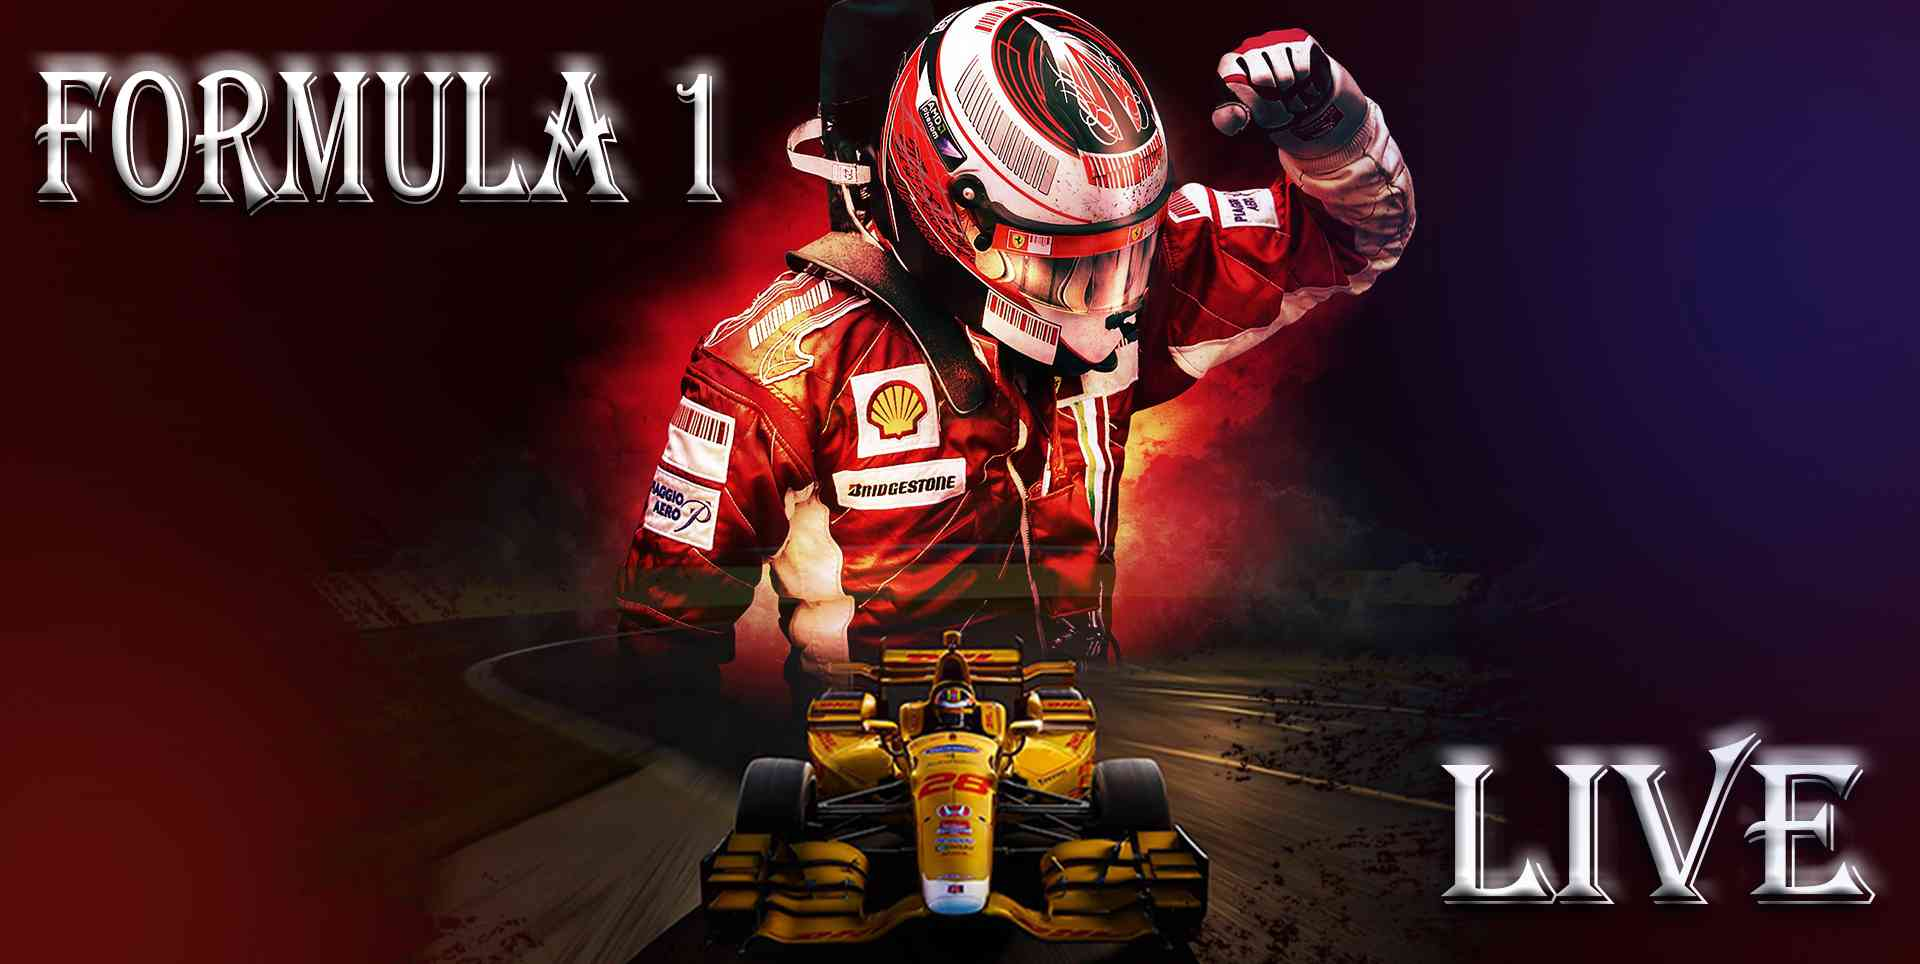 formula-1-live-stream-usa-gp-2015